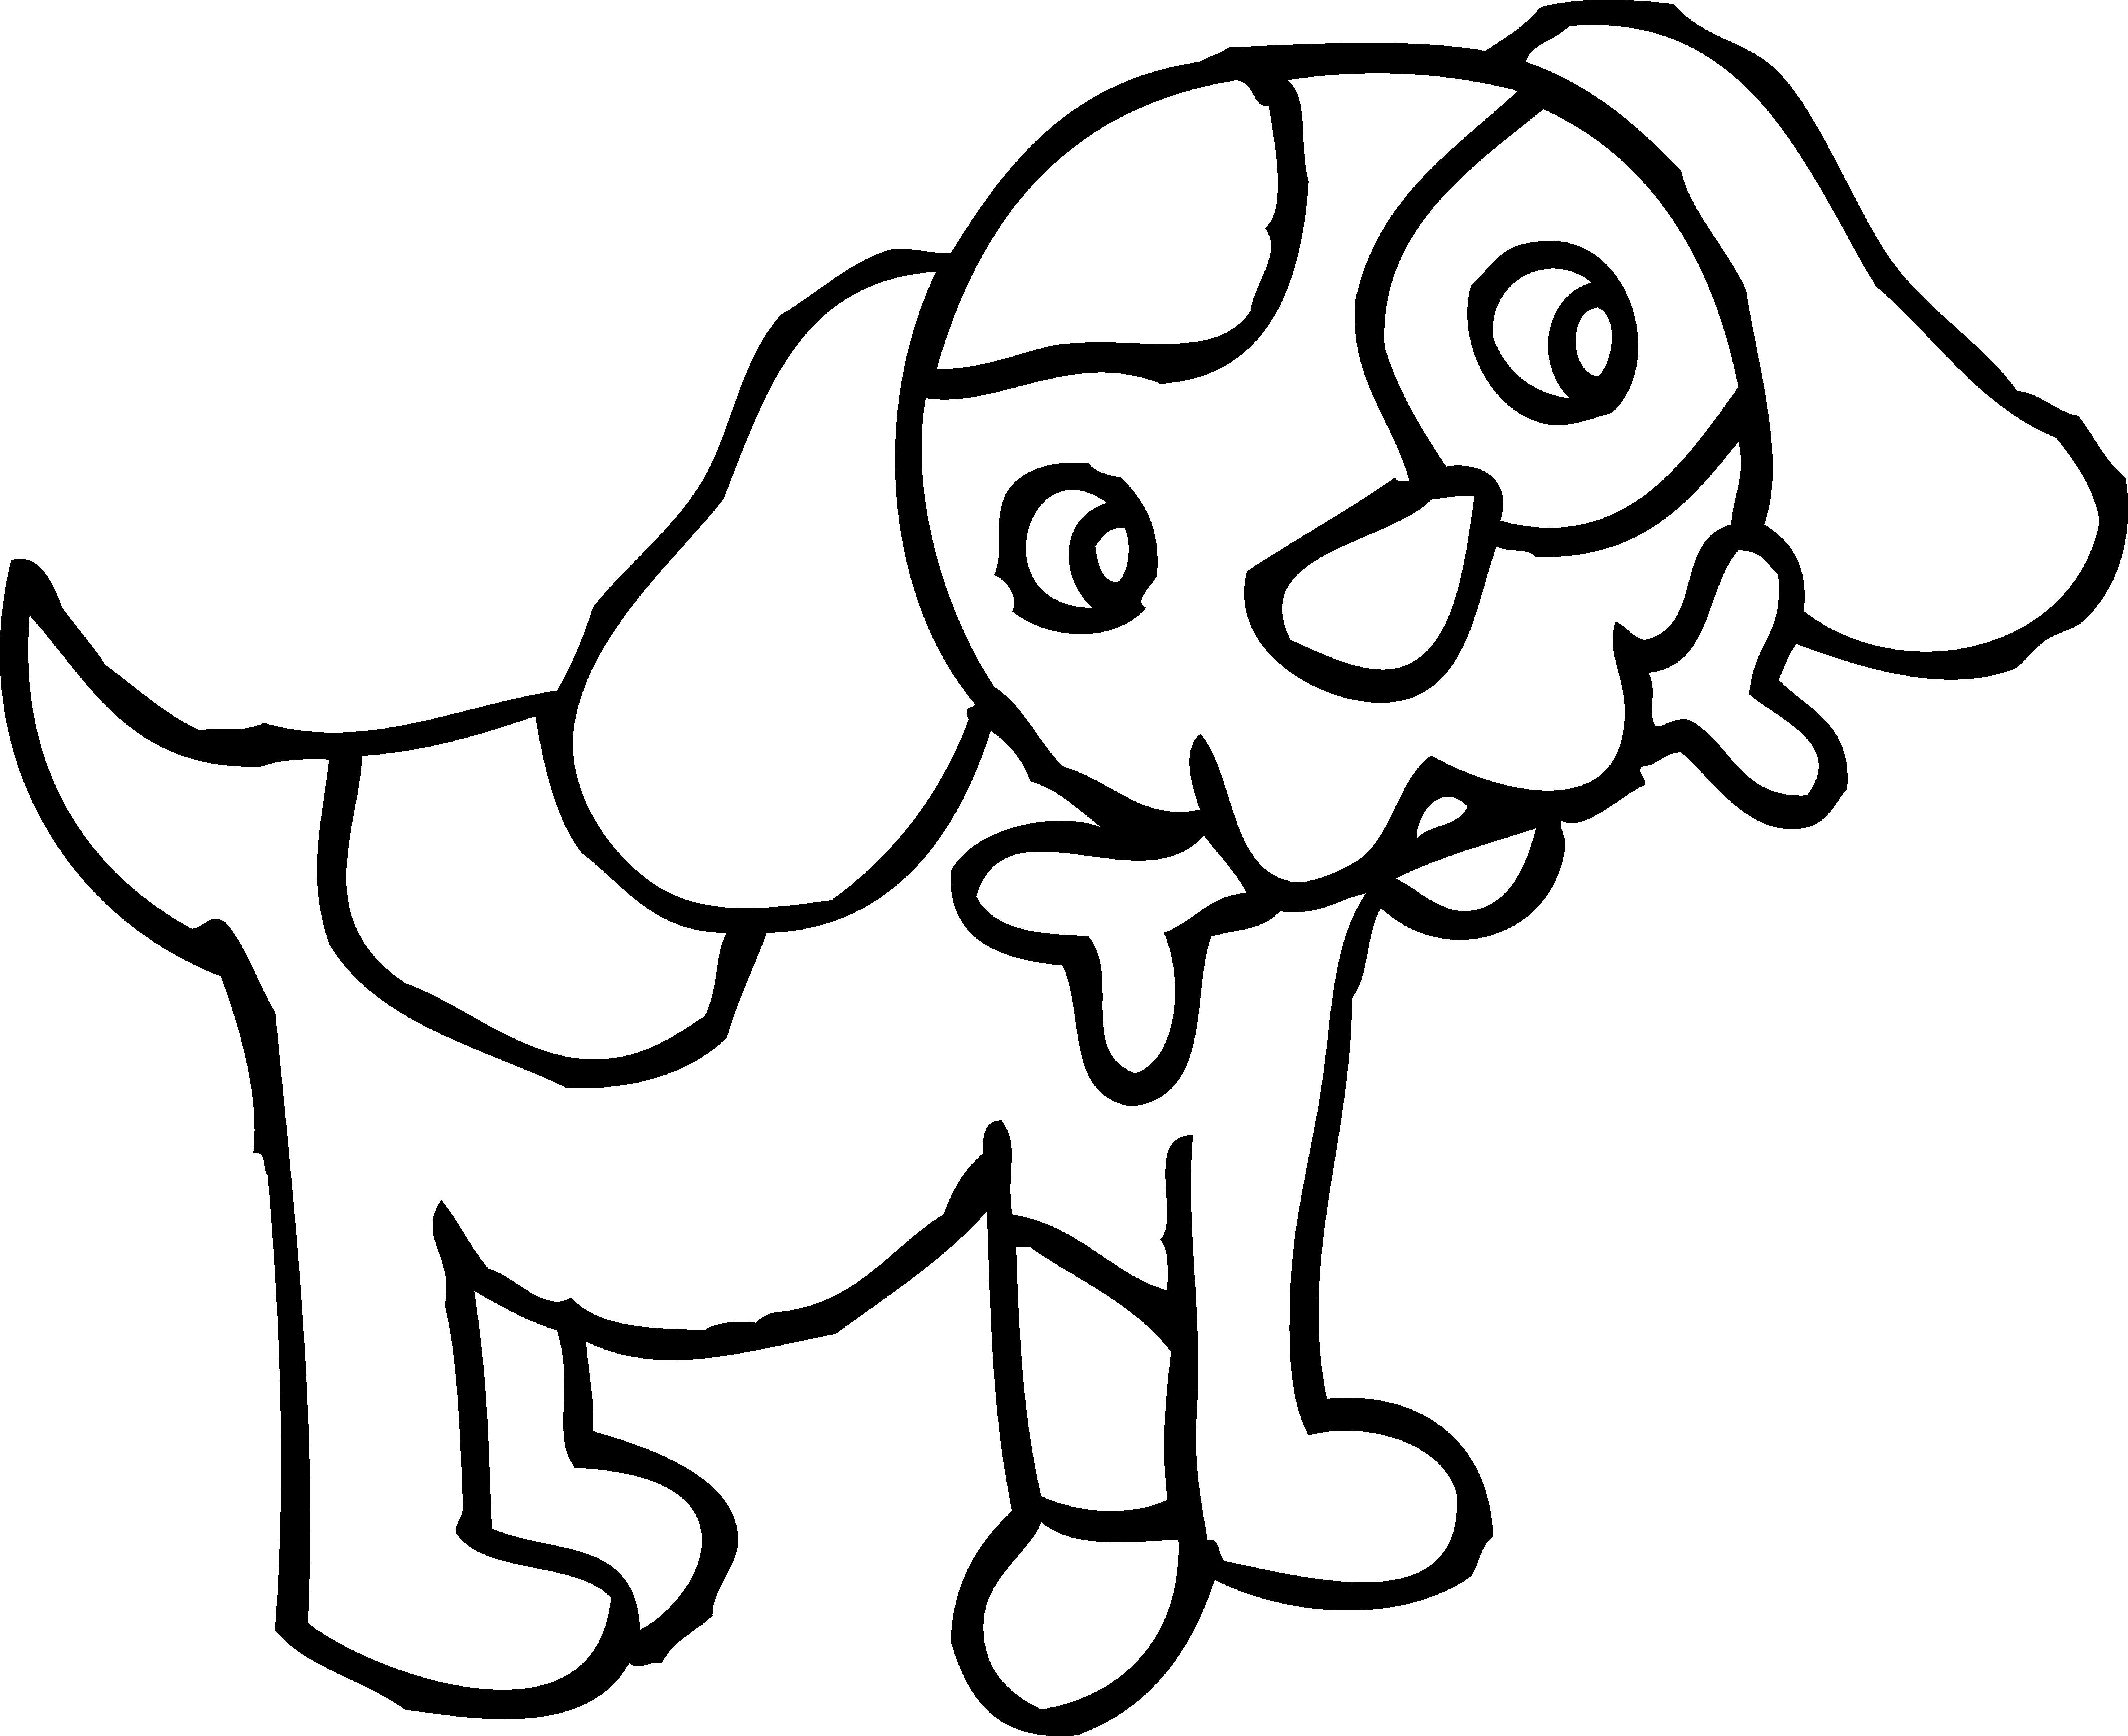 Clipart kids and pets playing black and white vector freeuse download Free Black And White Dog Clipart, Download Free Clip Art, Free Clip ... vector freeuse download